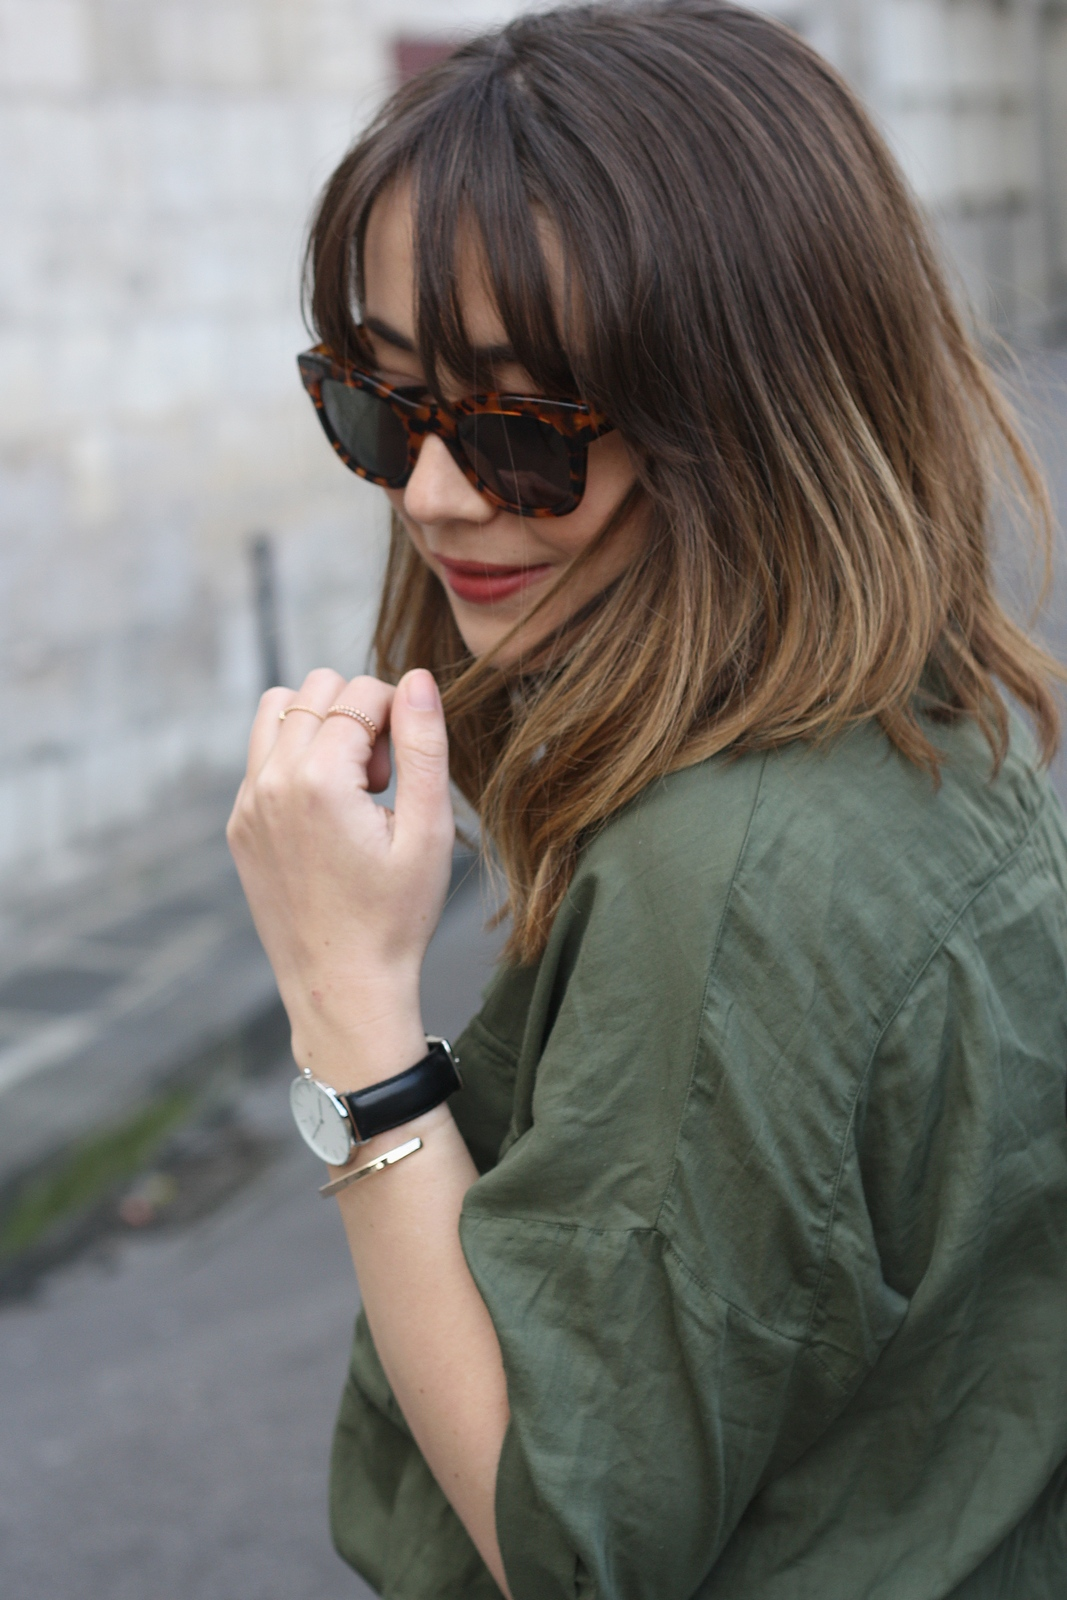 du style madame - blog mode - urban safari - stretstyle - look - lunettes tom's